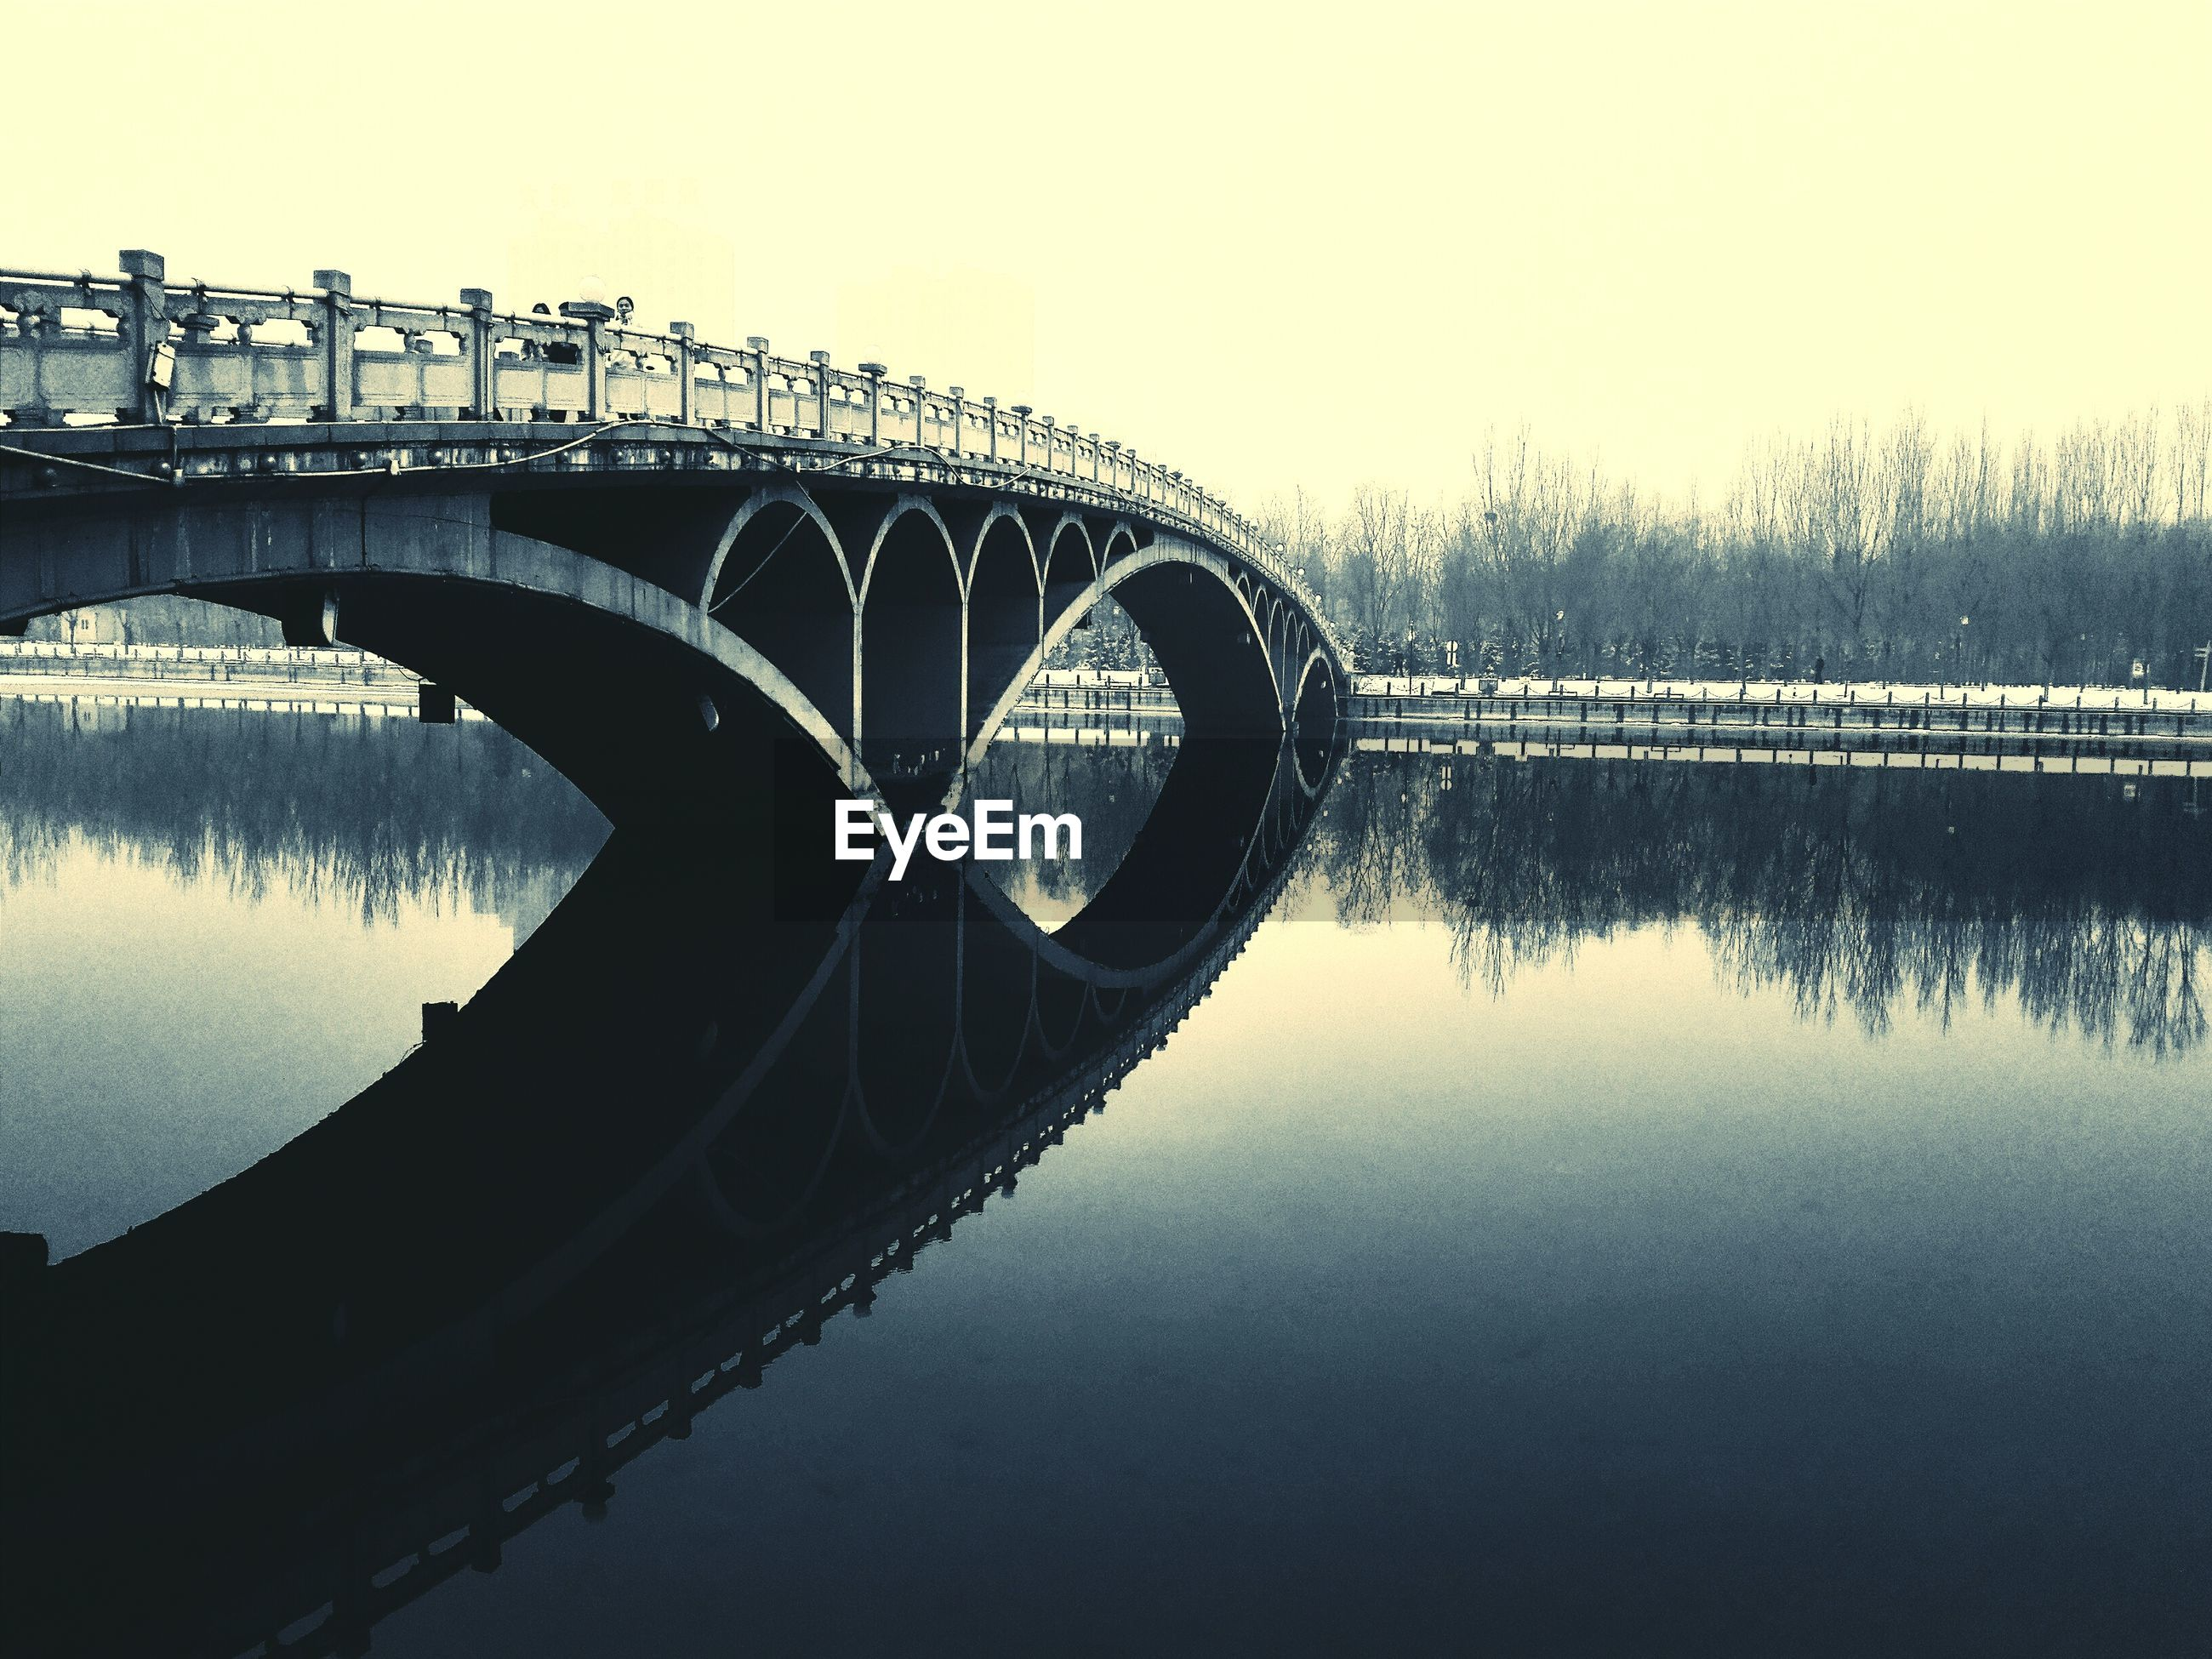 water, built structure, architecture, river, reflection, connection, bridge - man made structure, waterfront, arch bridge, clear sky, transportation, sky, lake, engineering, bridge, standing water, arch, copy space, dusk, outdoors